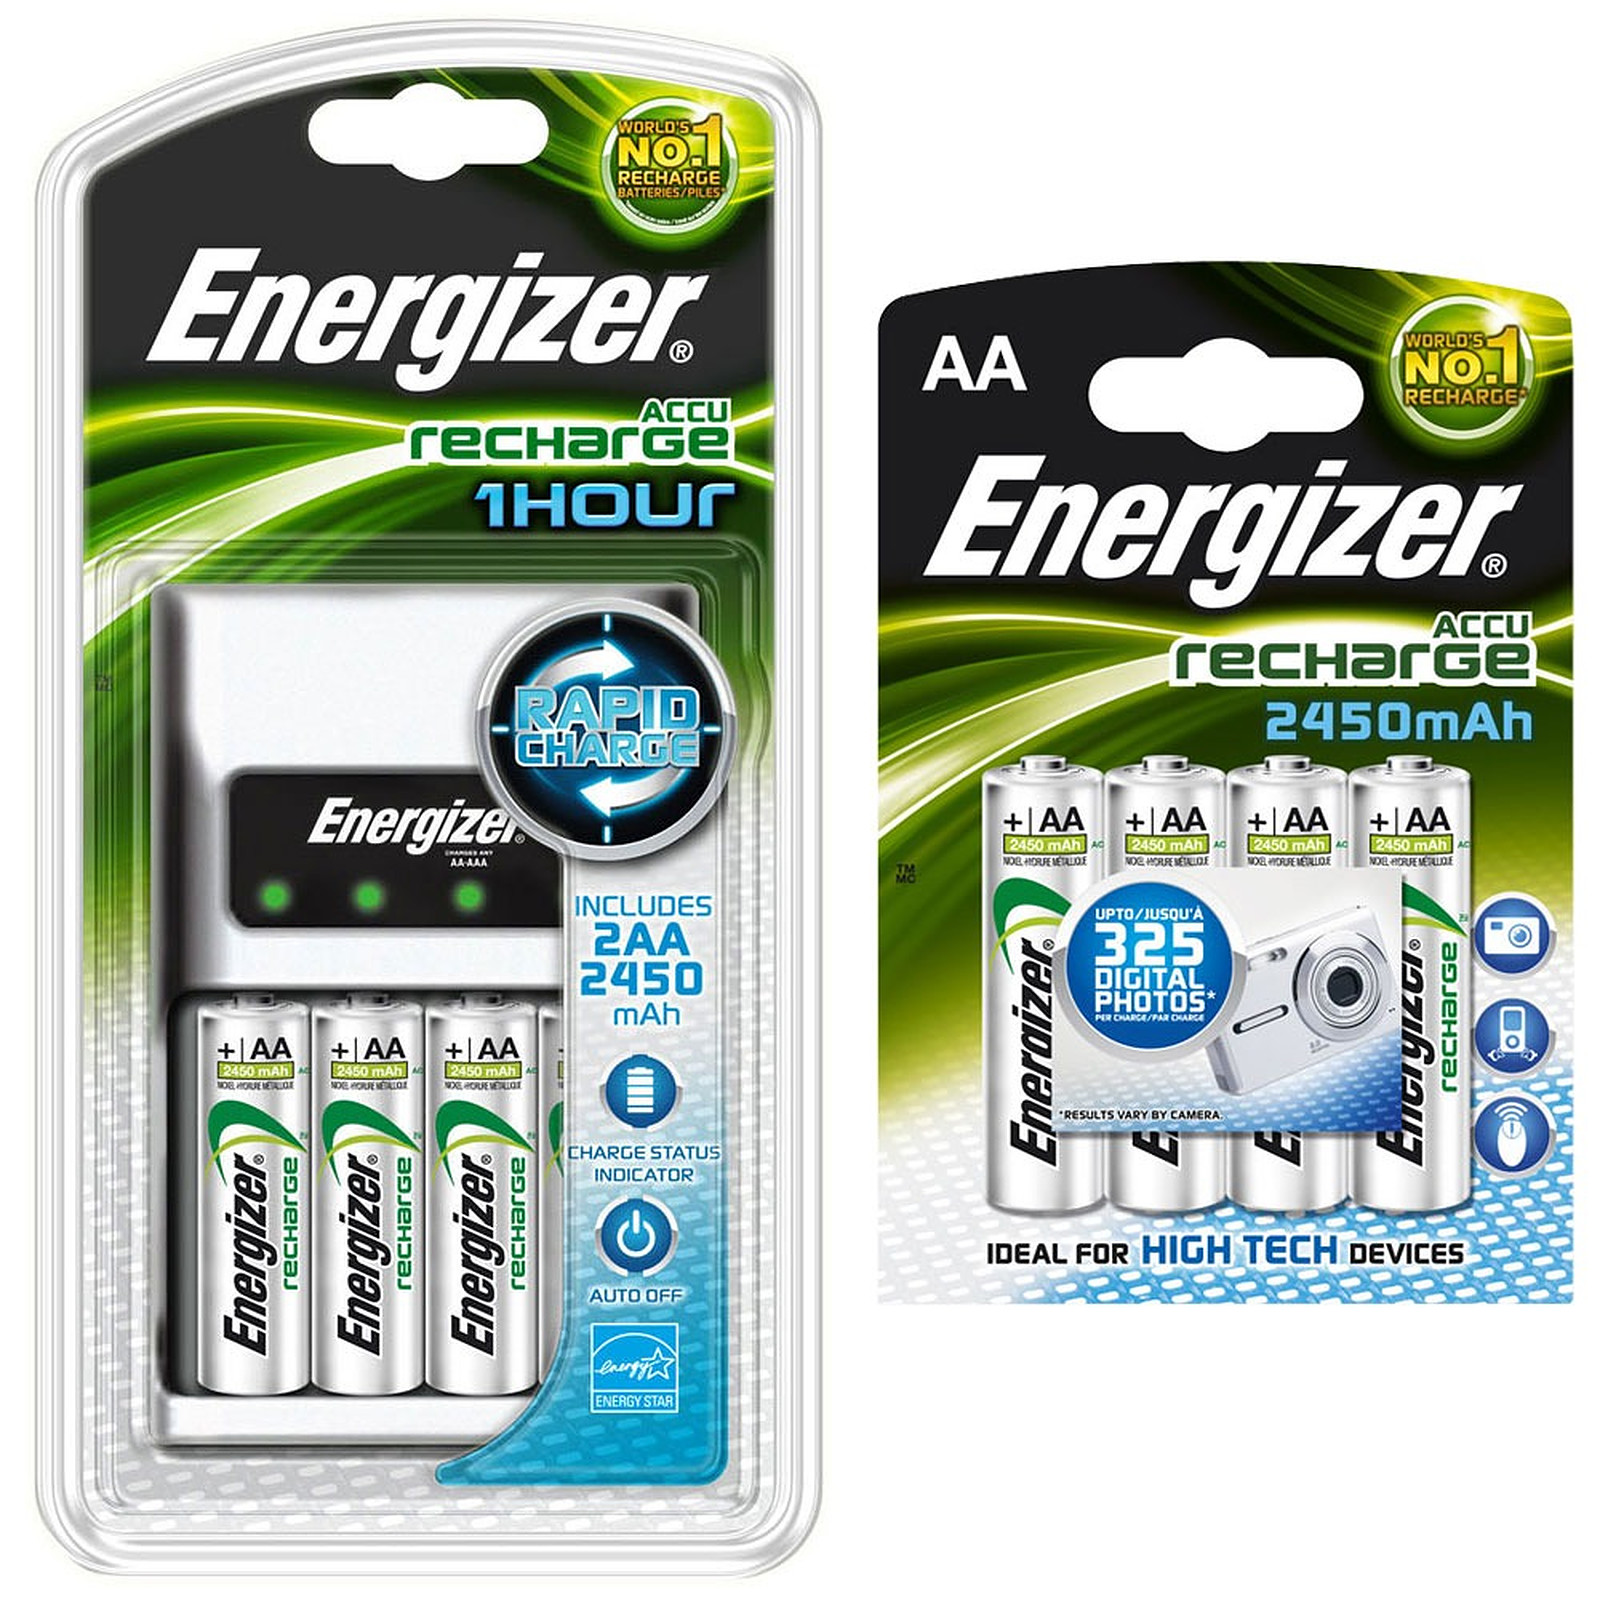 Energizer Chargeur 1 heure + 2x AA 2450 mAh + 4x AA 2450 mAh offertes !